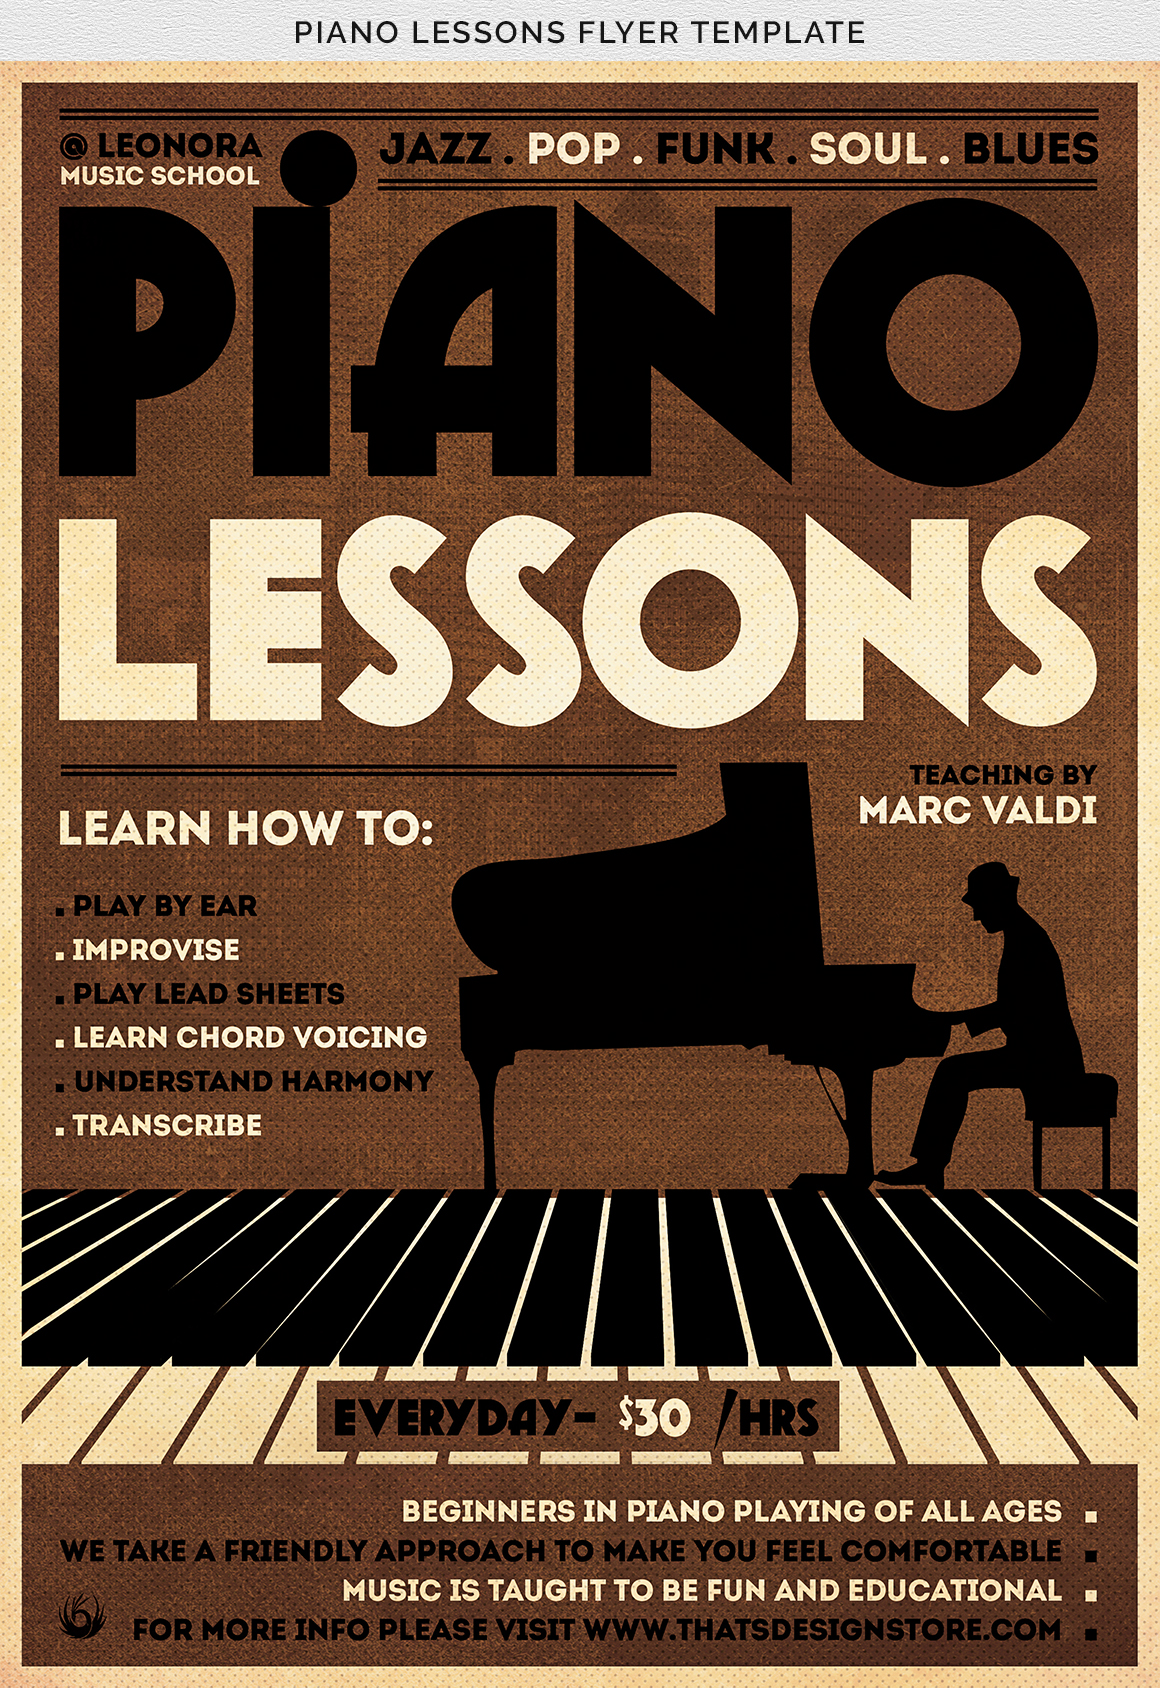 Piano Lessons Flyer Template example image 10